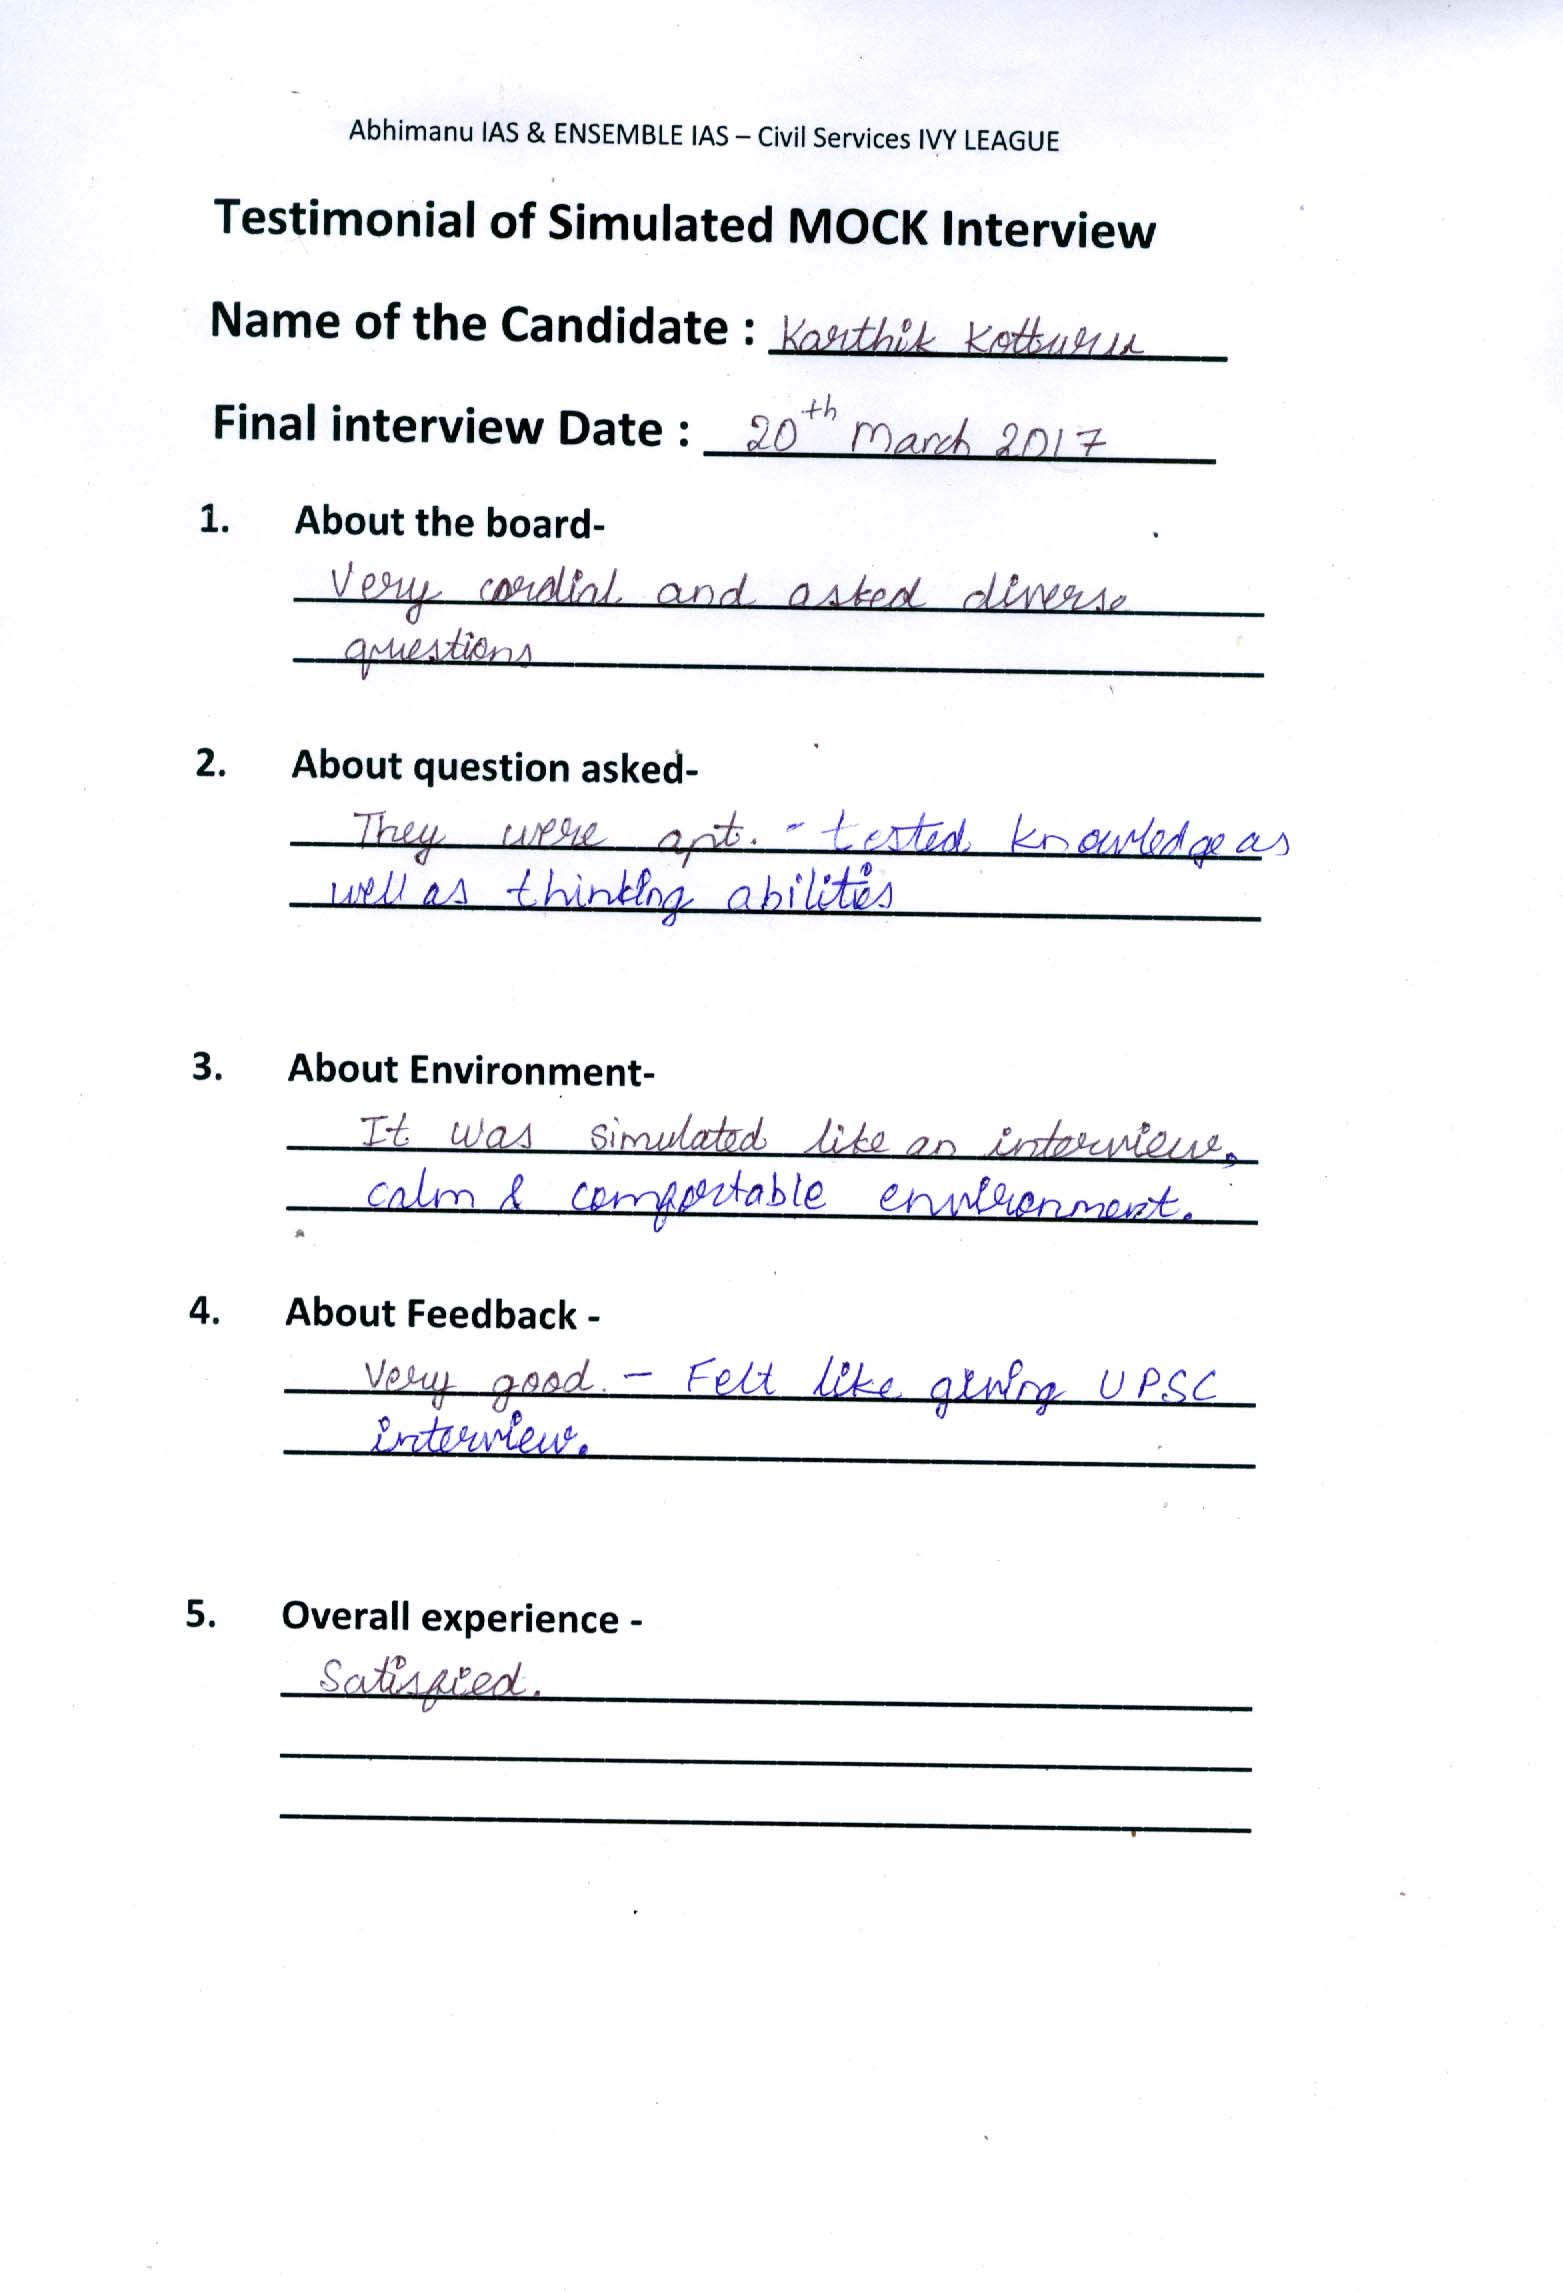 Interview Testimonial By- Karthik Kottoru